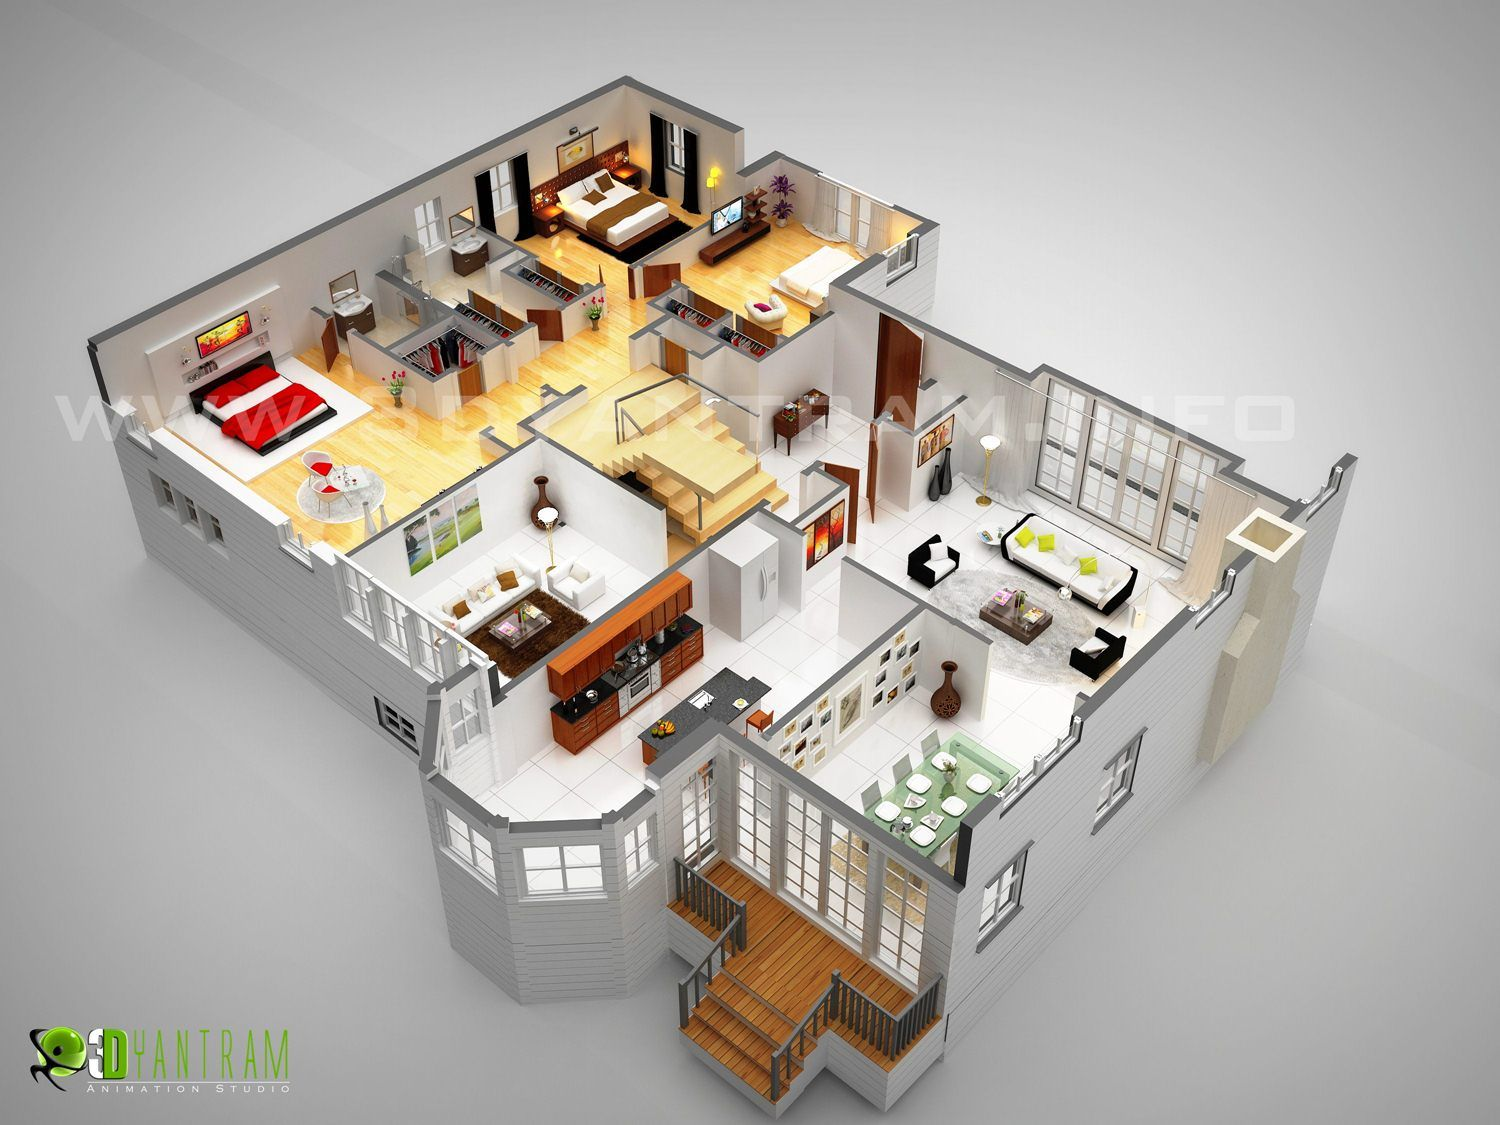 Laxurious residential 3d floor plan paris sims for Plans en 3d